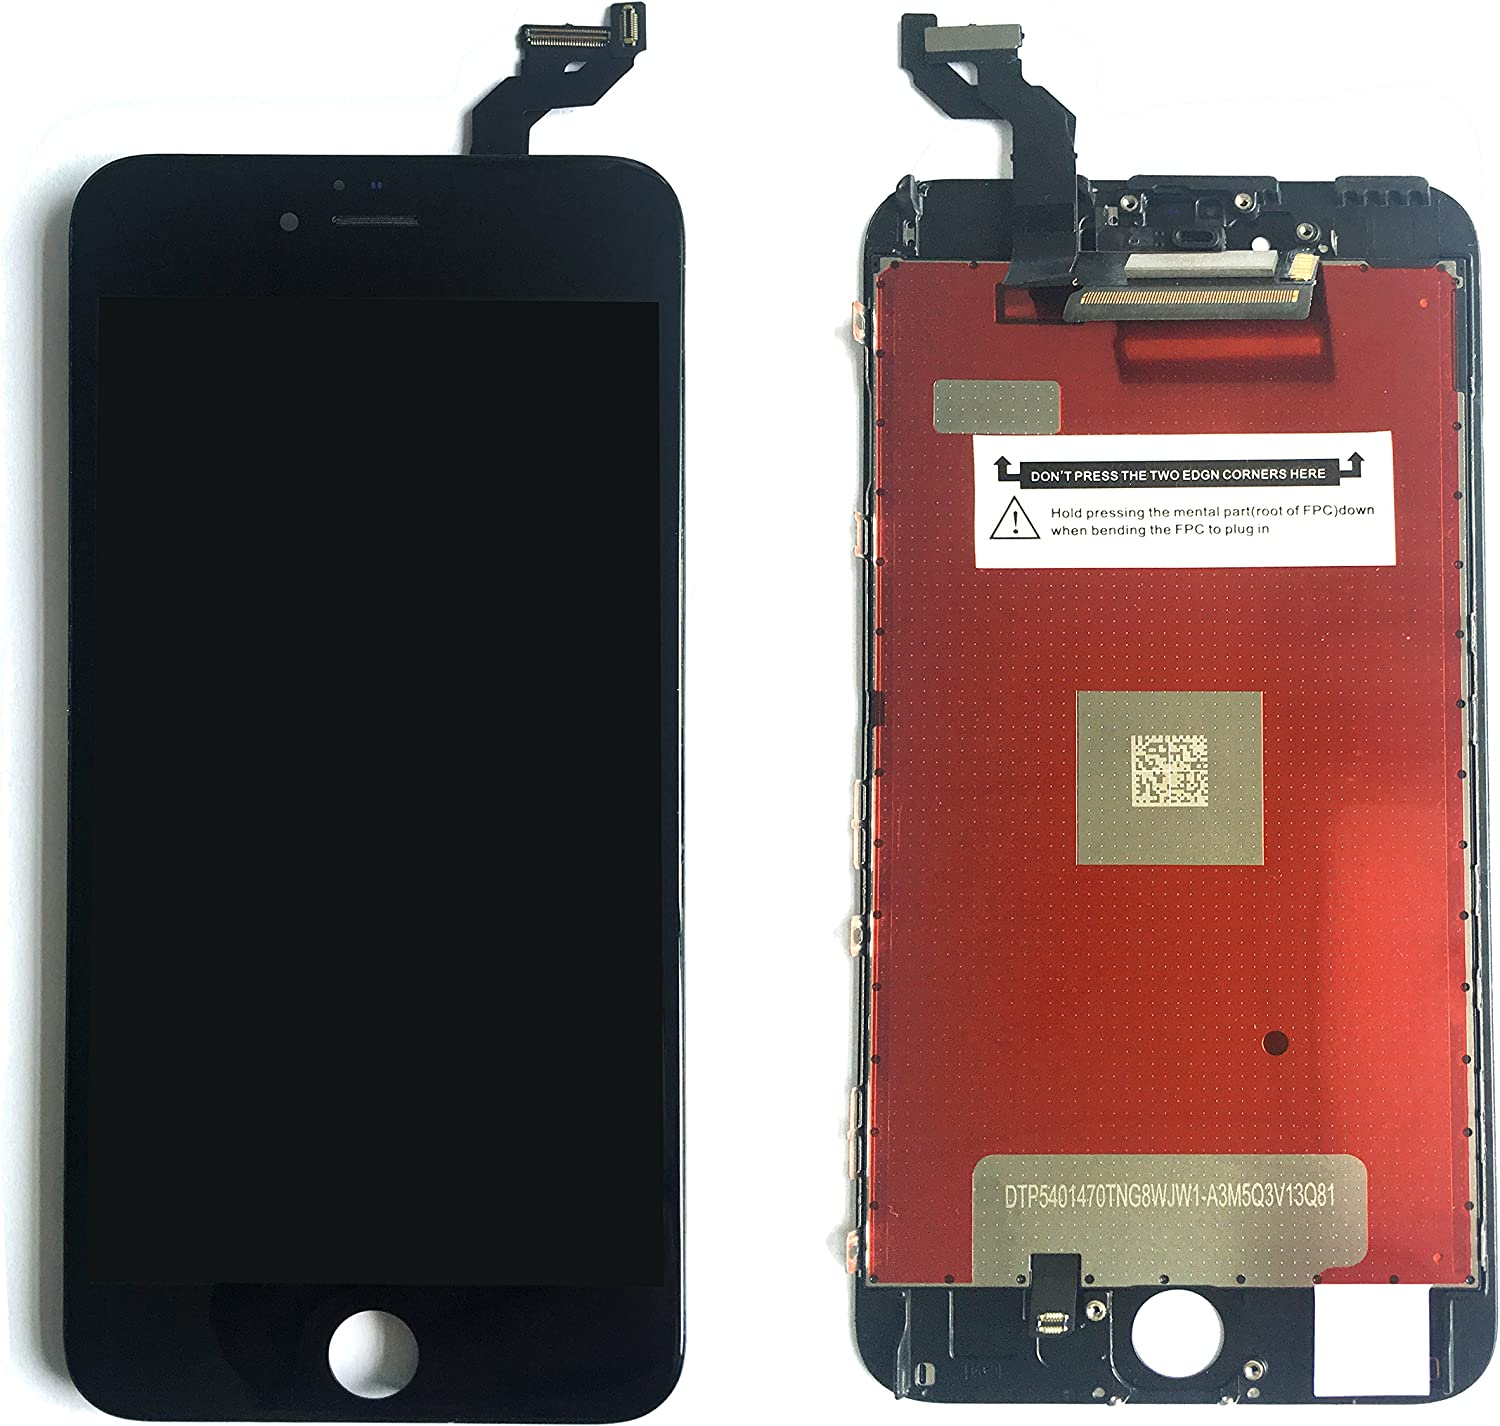 passionTR LCD Screen Replacement Kit For iPhone 6S Plus with Digitizer Touch Screen Display Assembly 3D Touch Repair Tools For 6S Plus 5.5 Inch Black